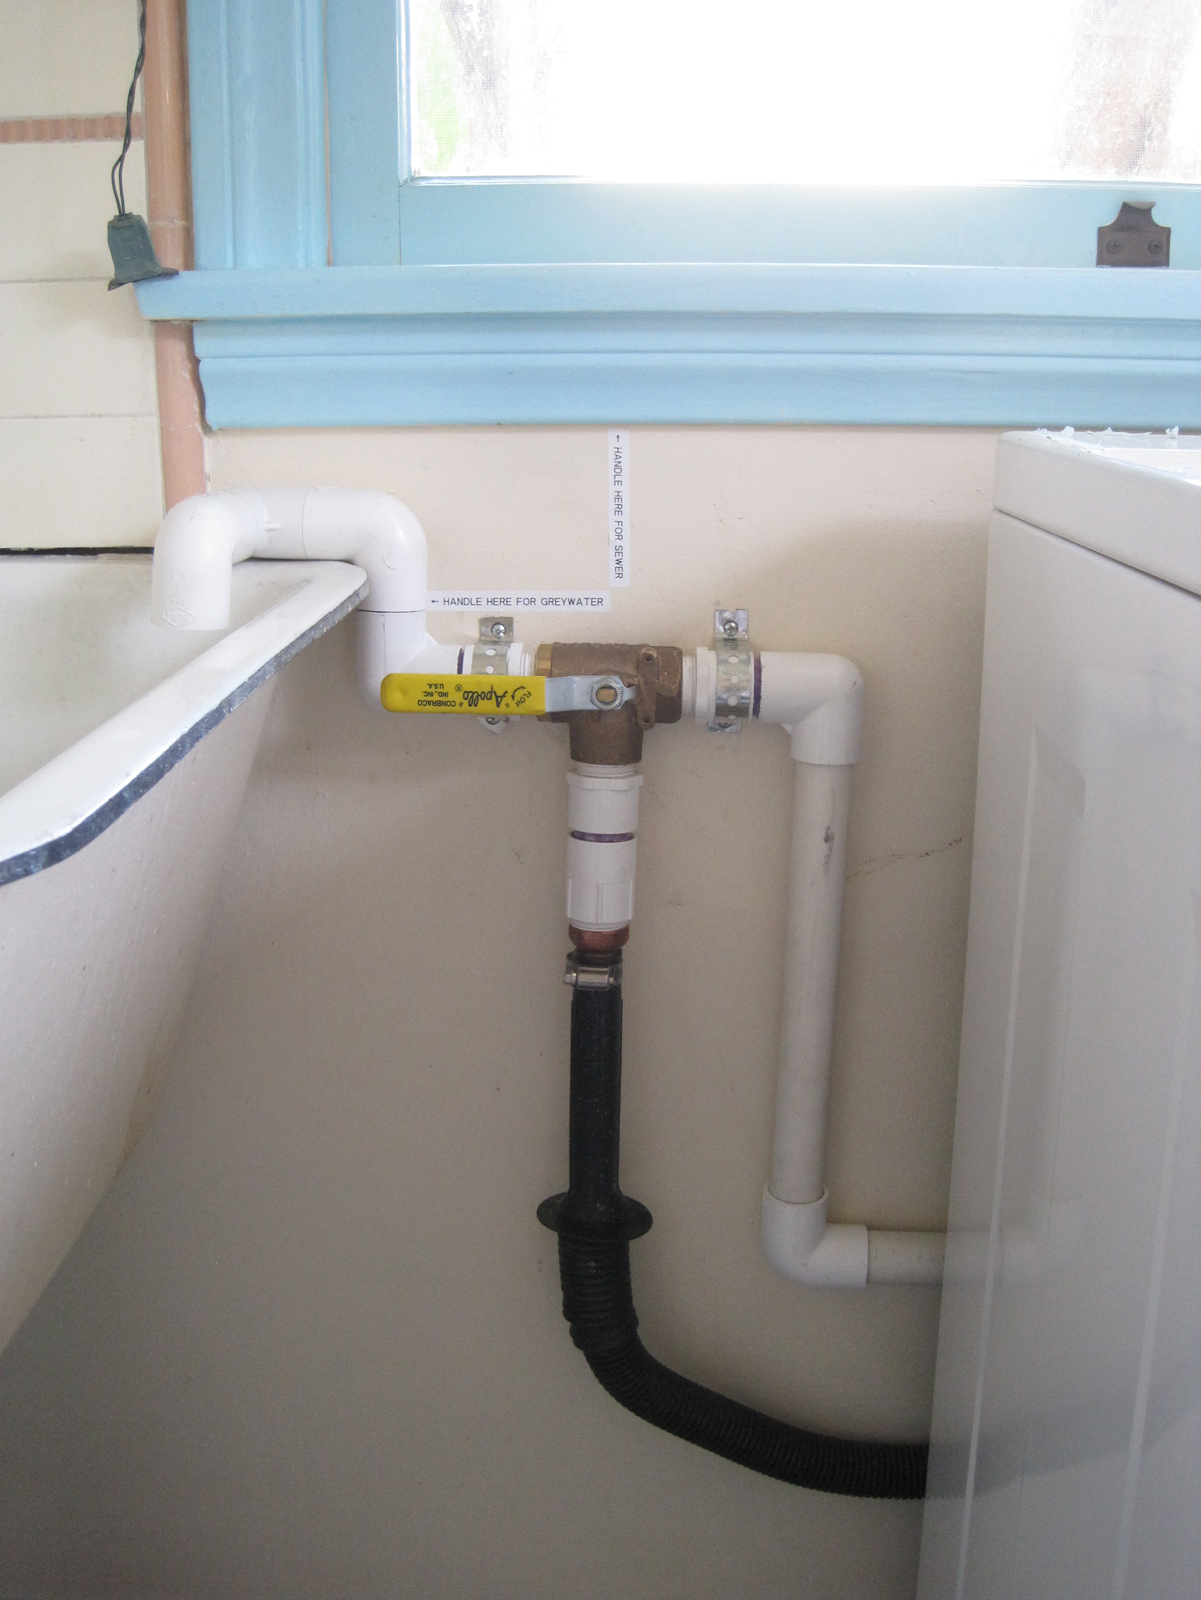 A laundry diverter valve, which will let you send greywater to your landscaping or to the sewer (as required by California law).